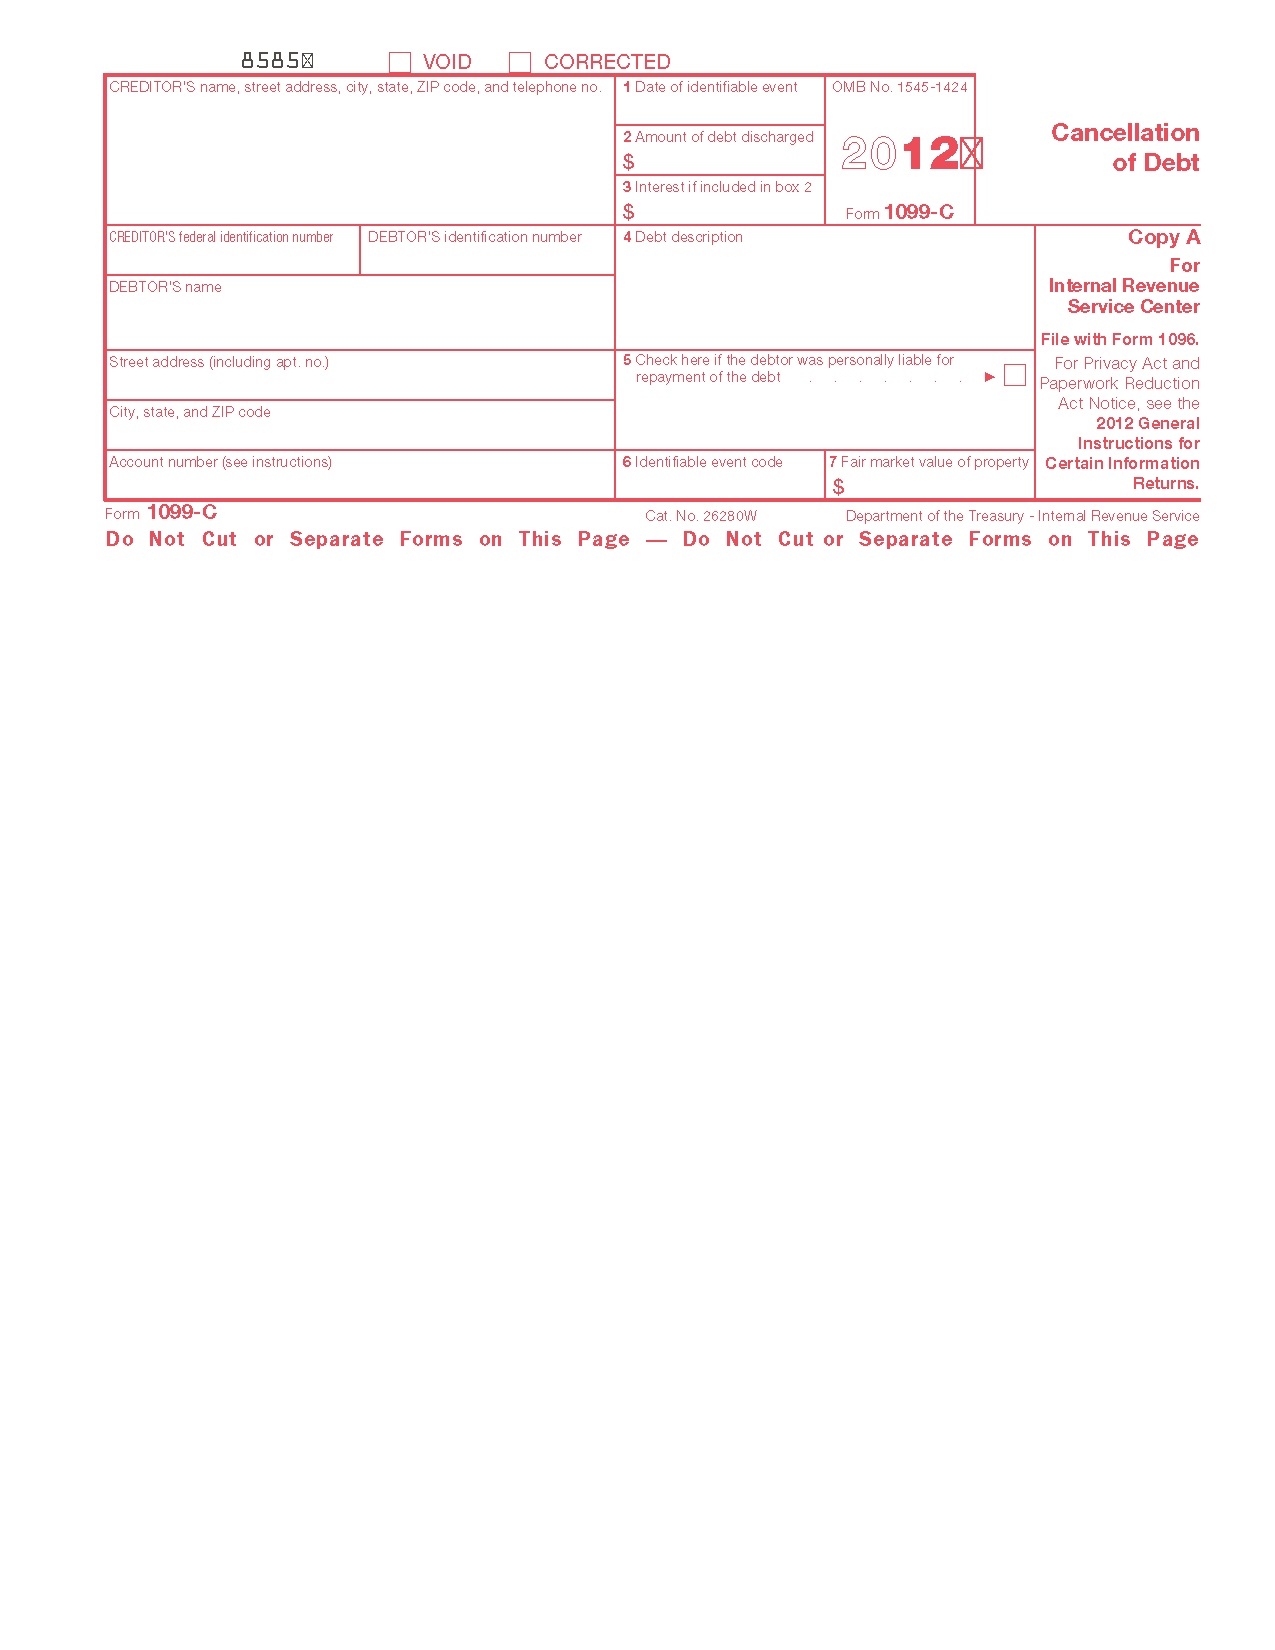 Form C Cancellation Of Debt Info Copy Only